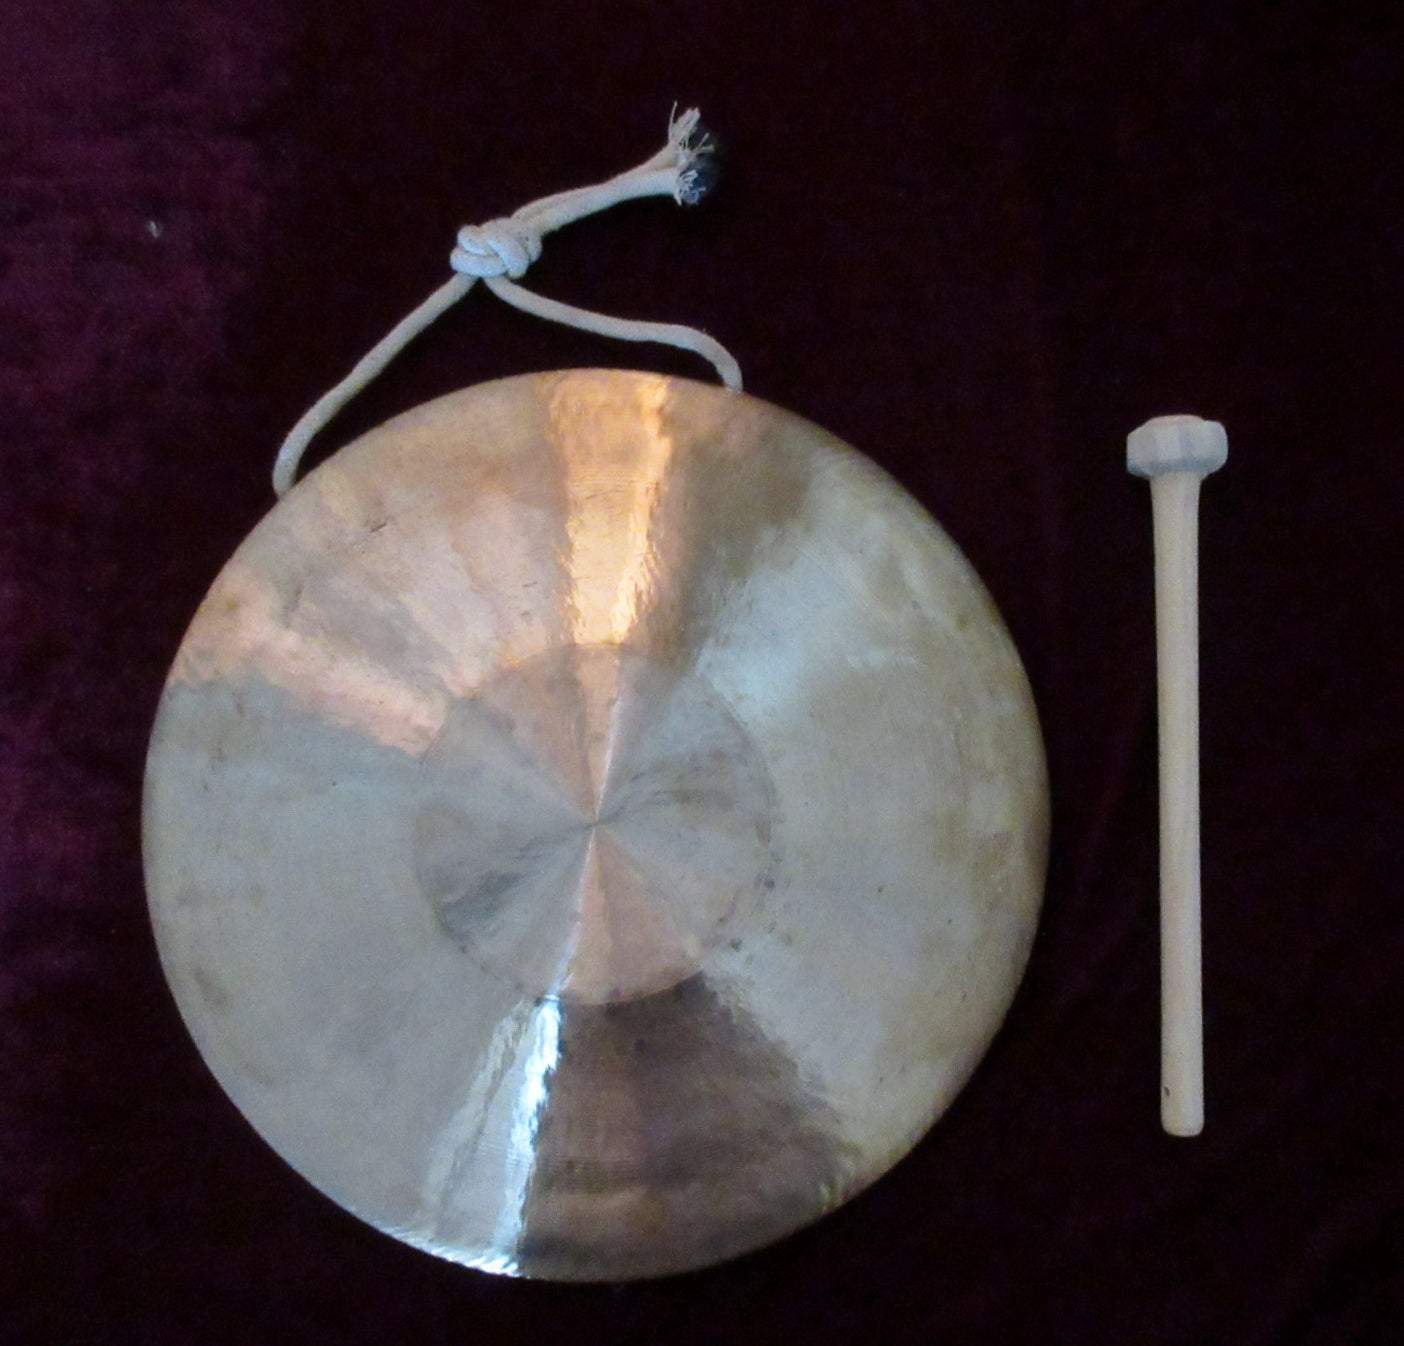 Gong,  Su Gong, 30cm  (12 inches)  in diametre 小苏锣